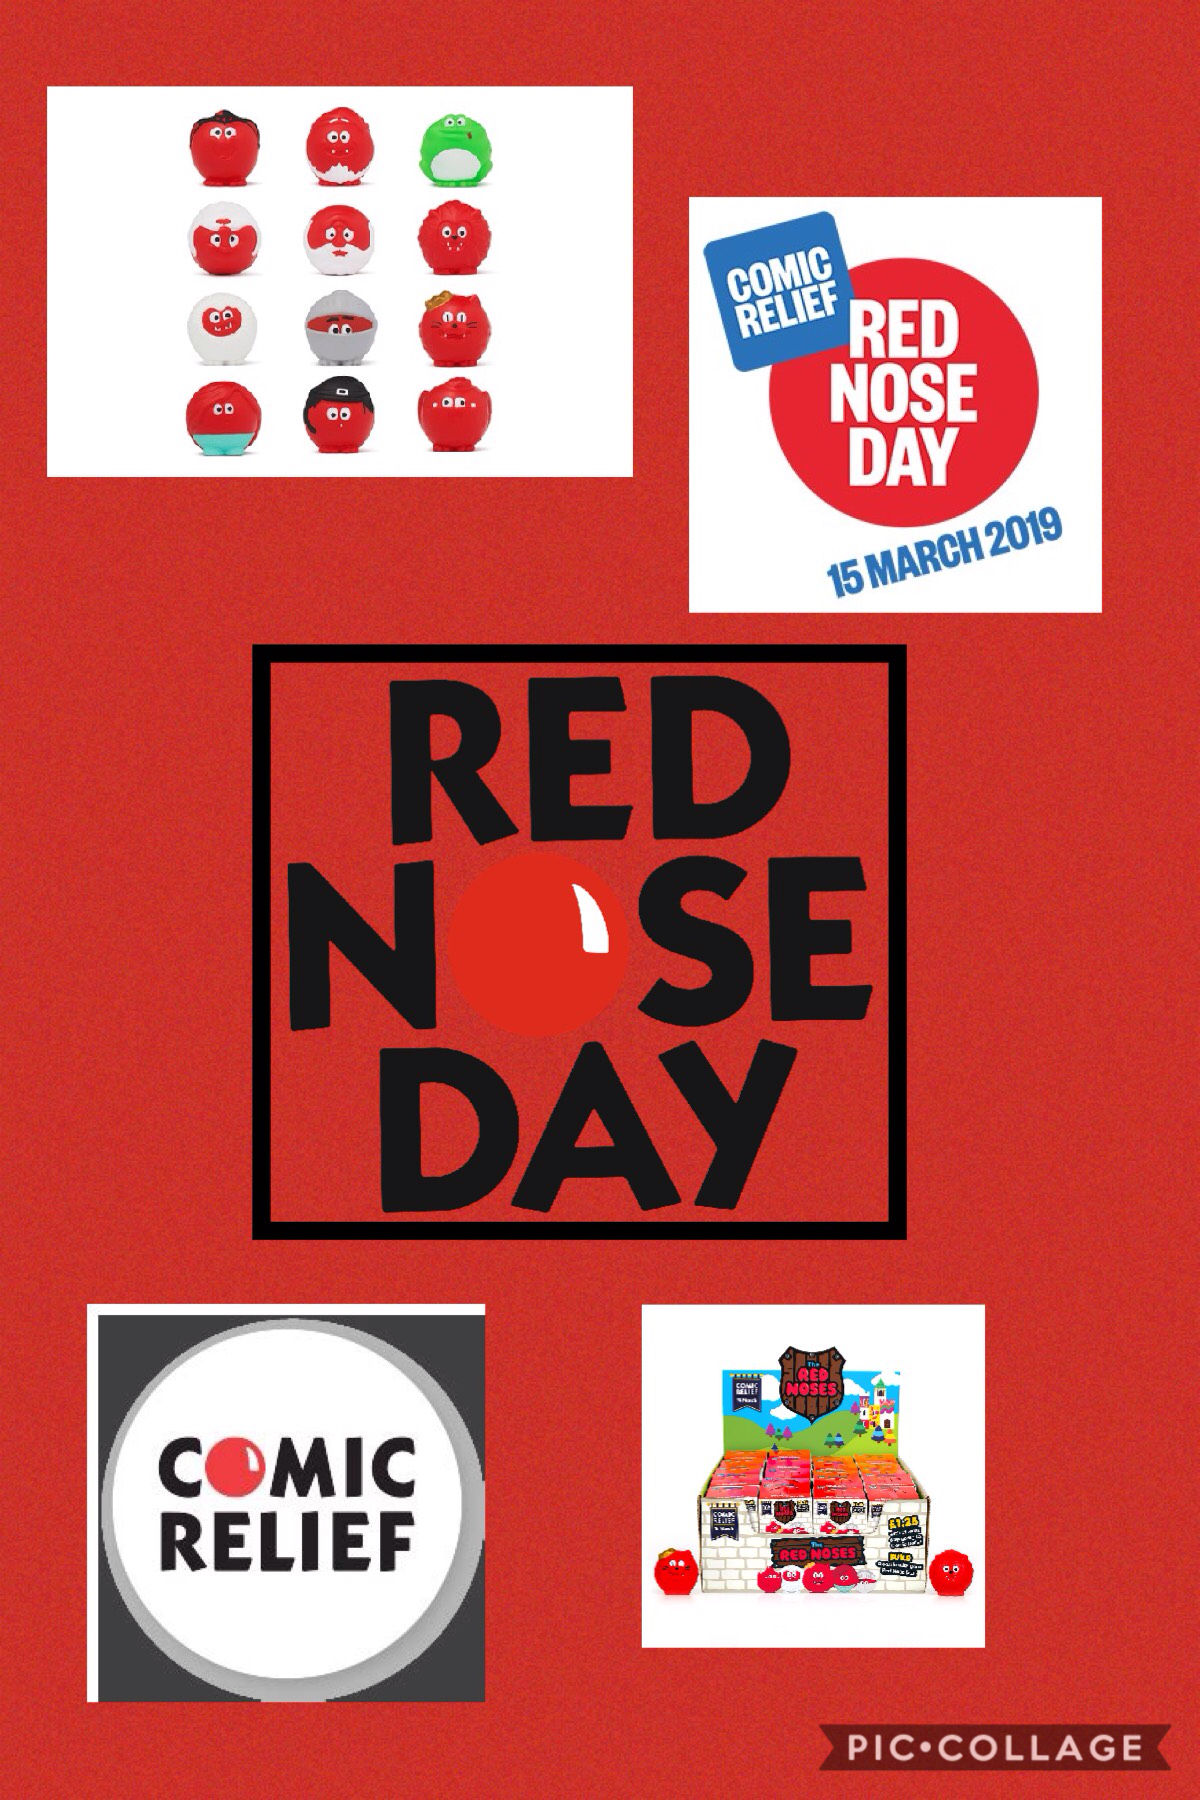 Happy Red Nose Day guys!❤️